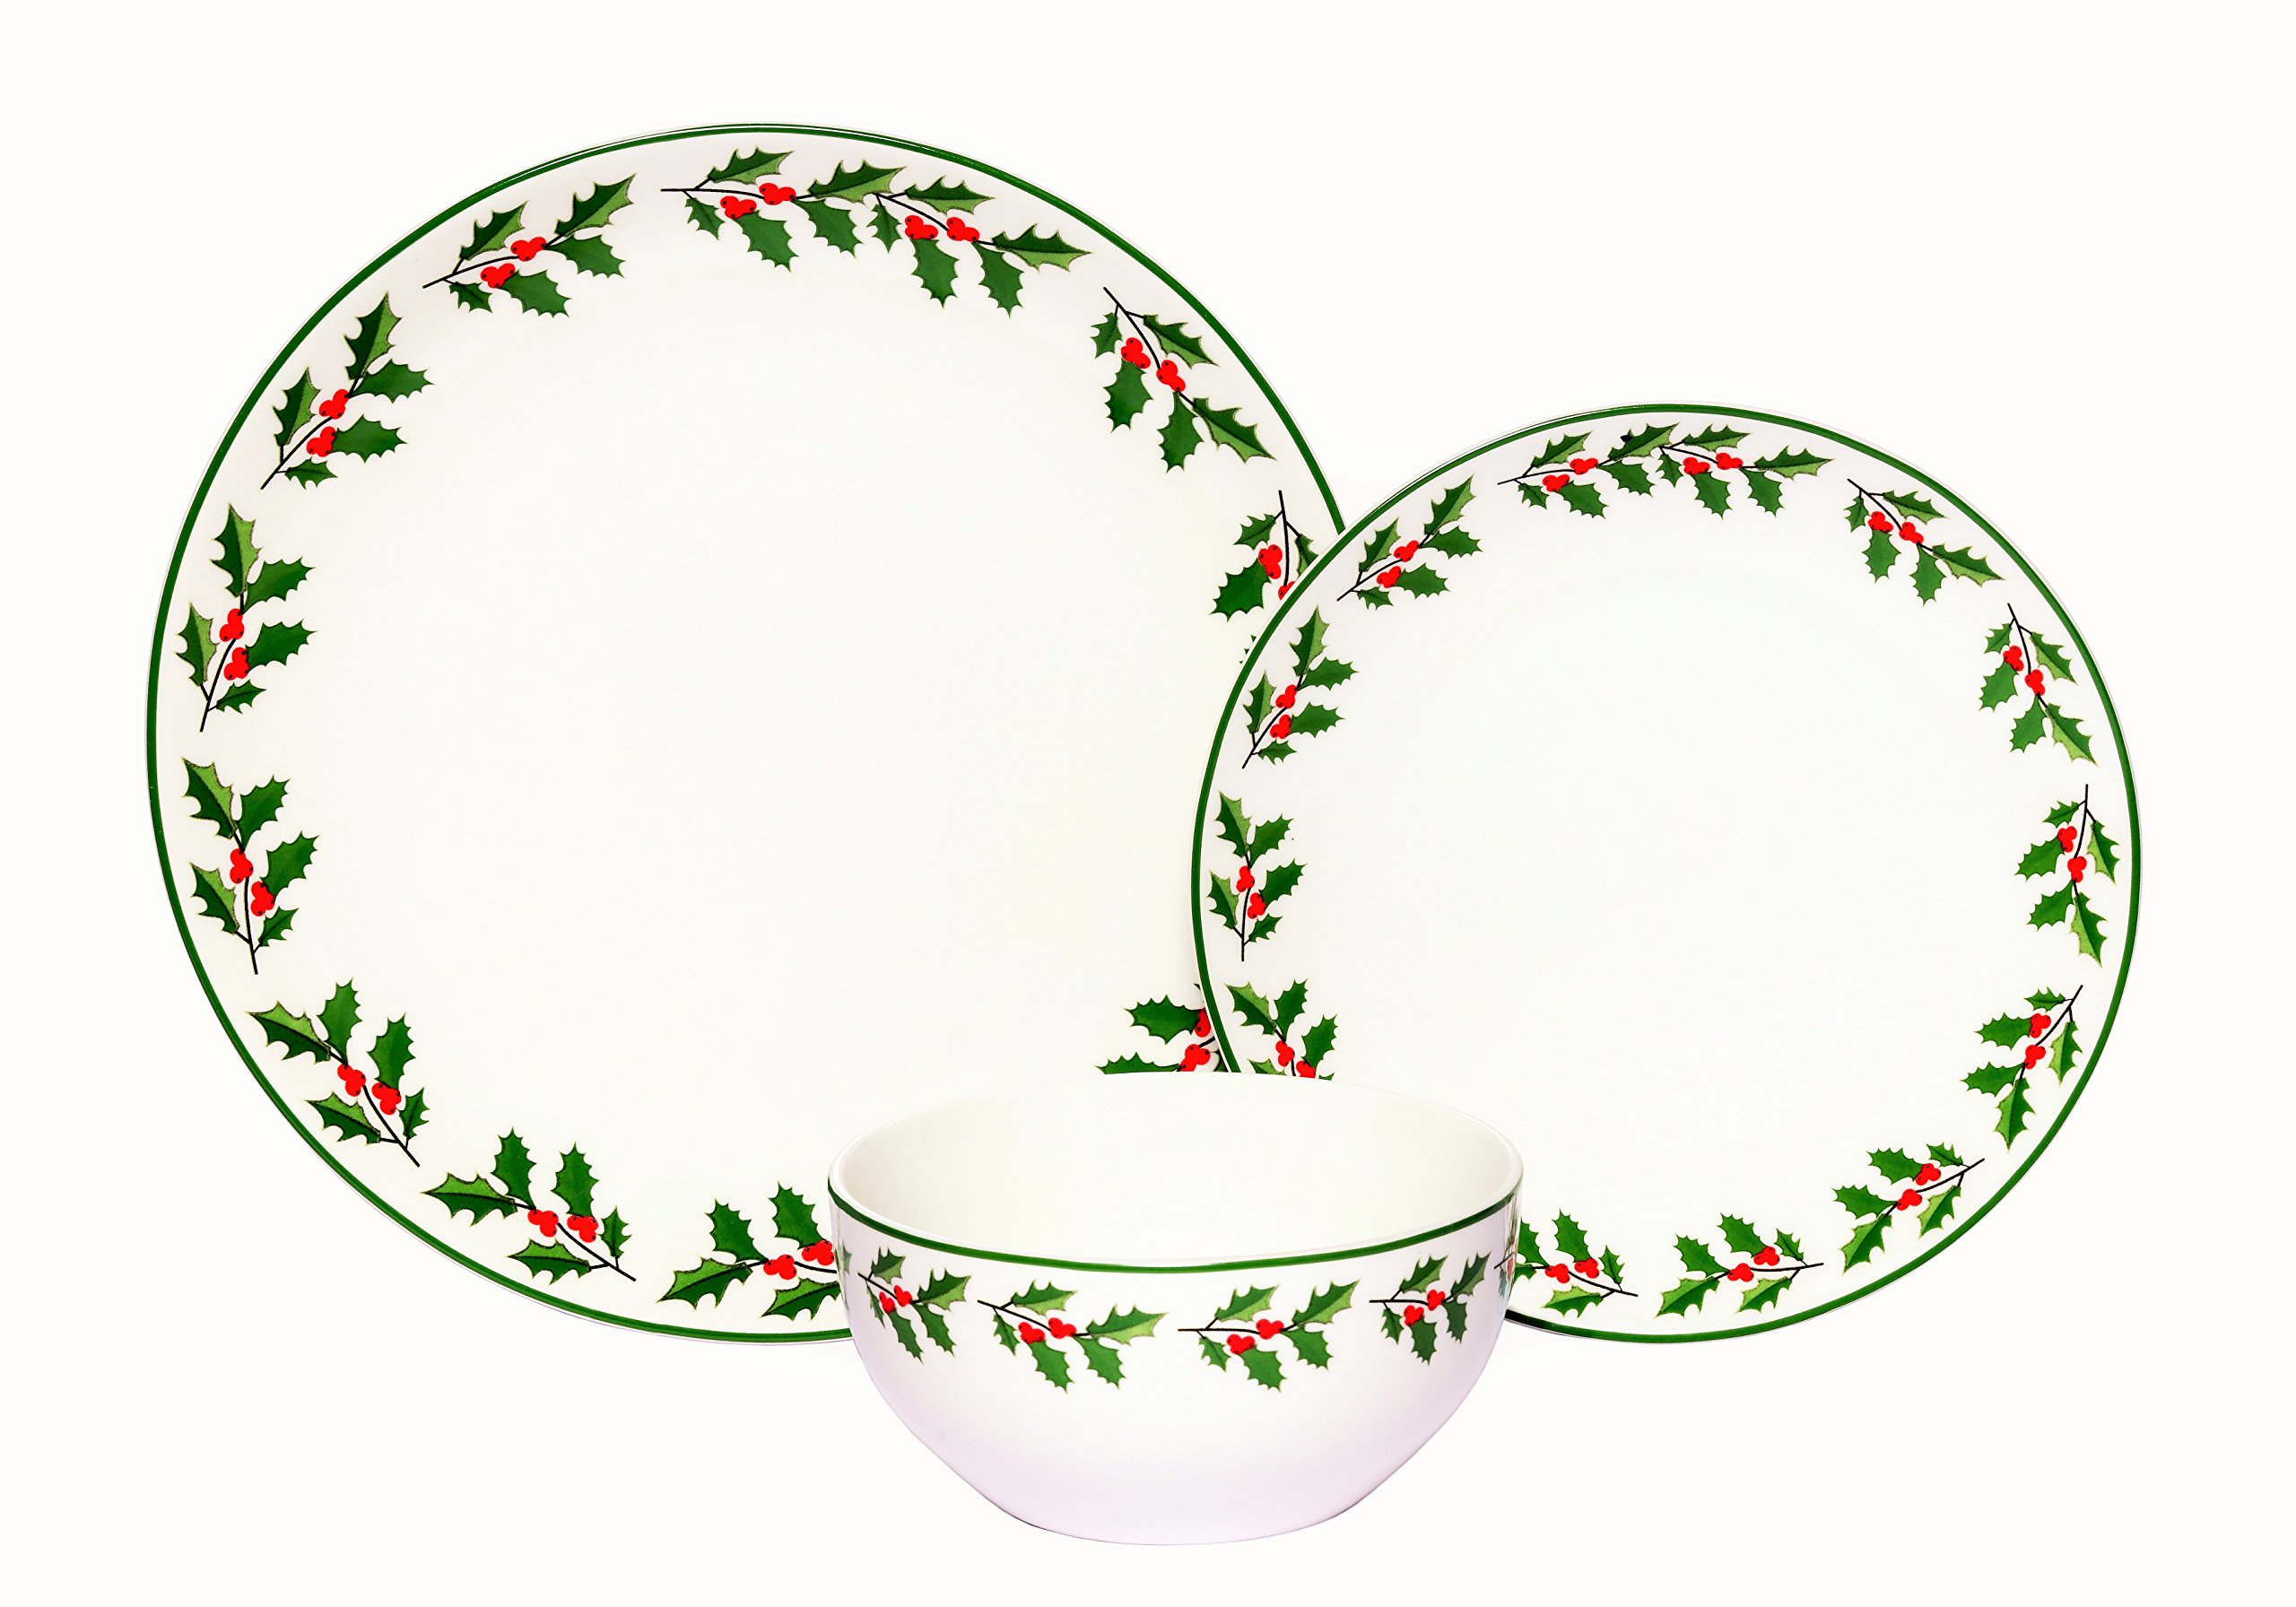 Melange Coupe 36-Piece Porcelain Dinnerware Set (Holly) | Service for 12 | Microwave, Dishwasher & Oven Safe | Dinner Plate, Salad Plate & Soup Bowl (12 Each) by Melange